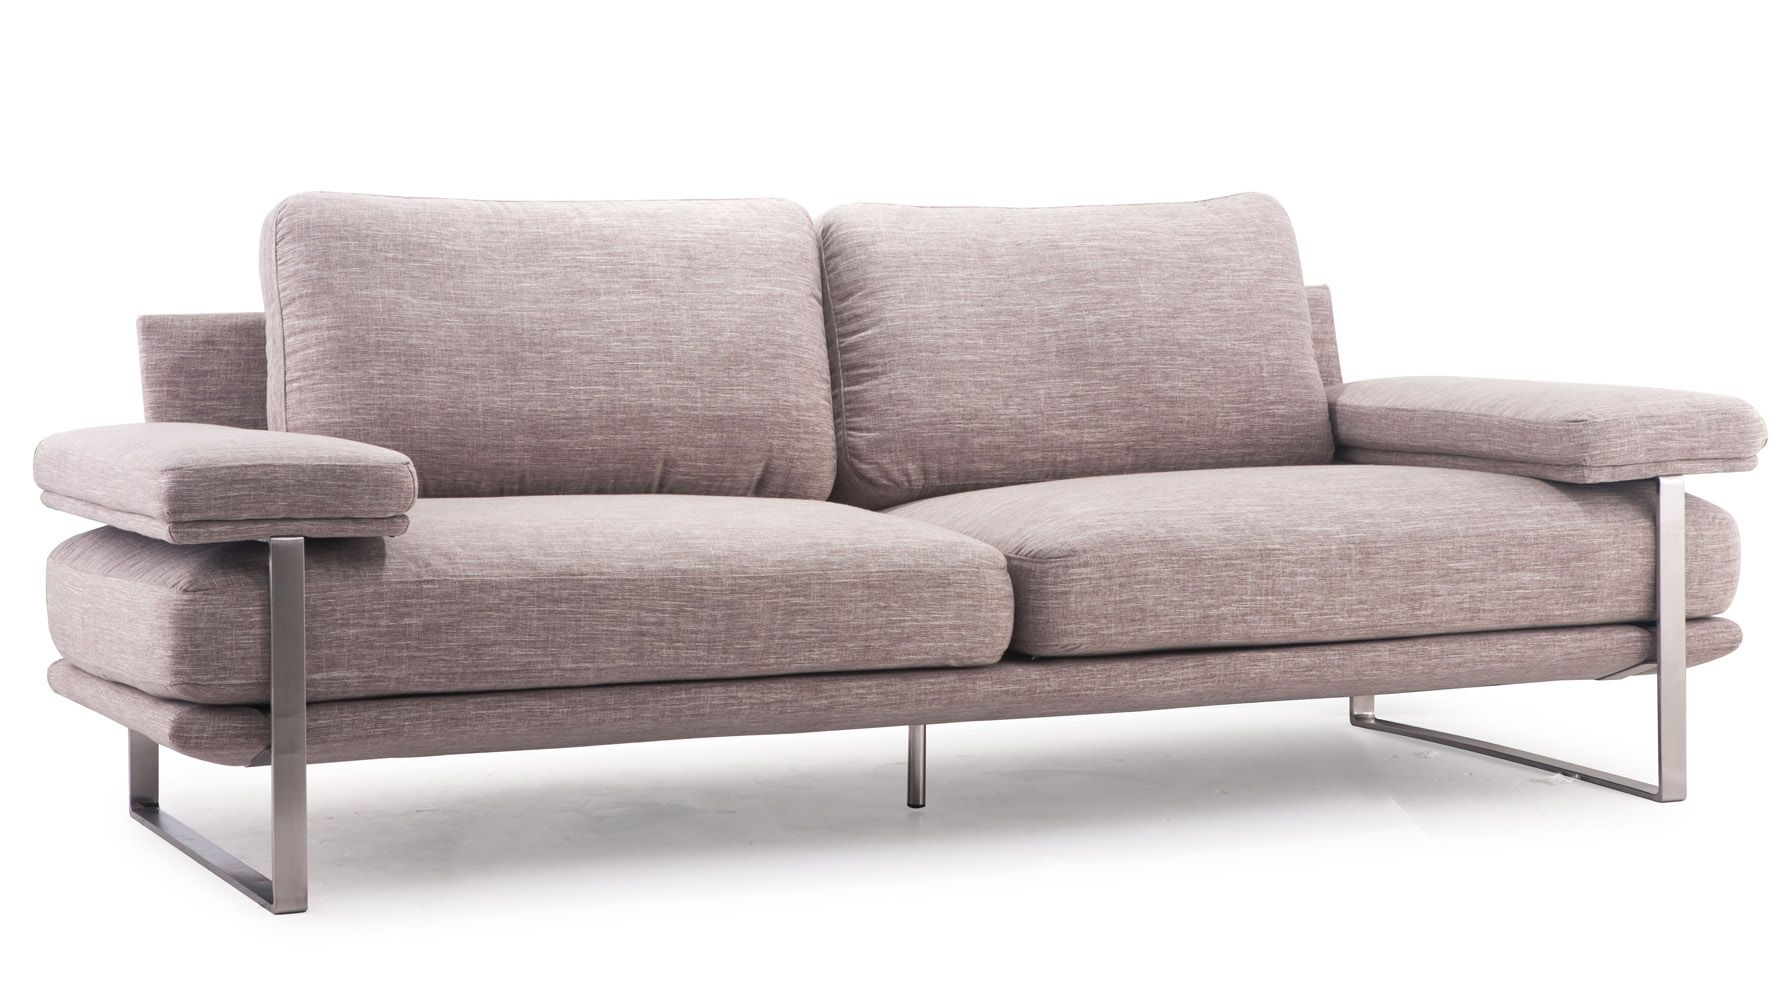 Boba Sofa Steel Sofa Contemporary Sofa Furniture